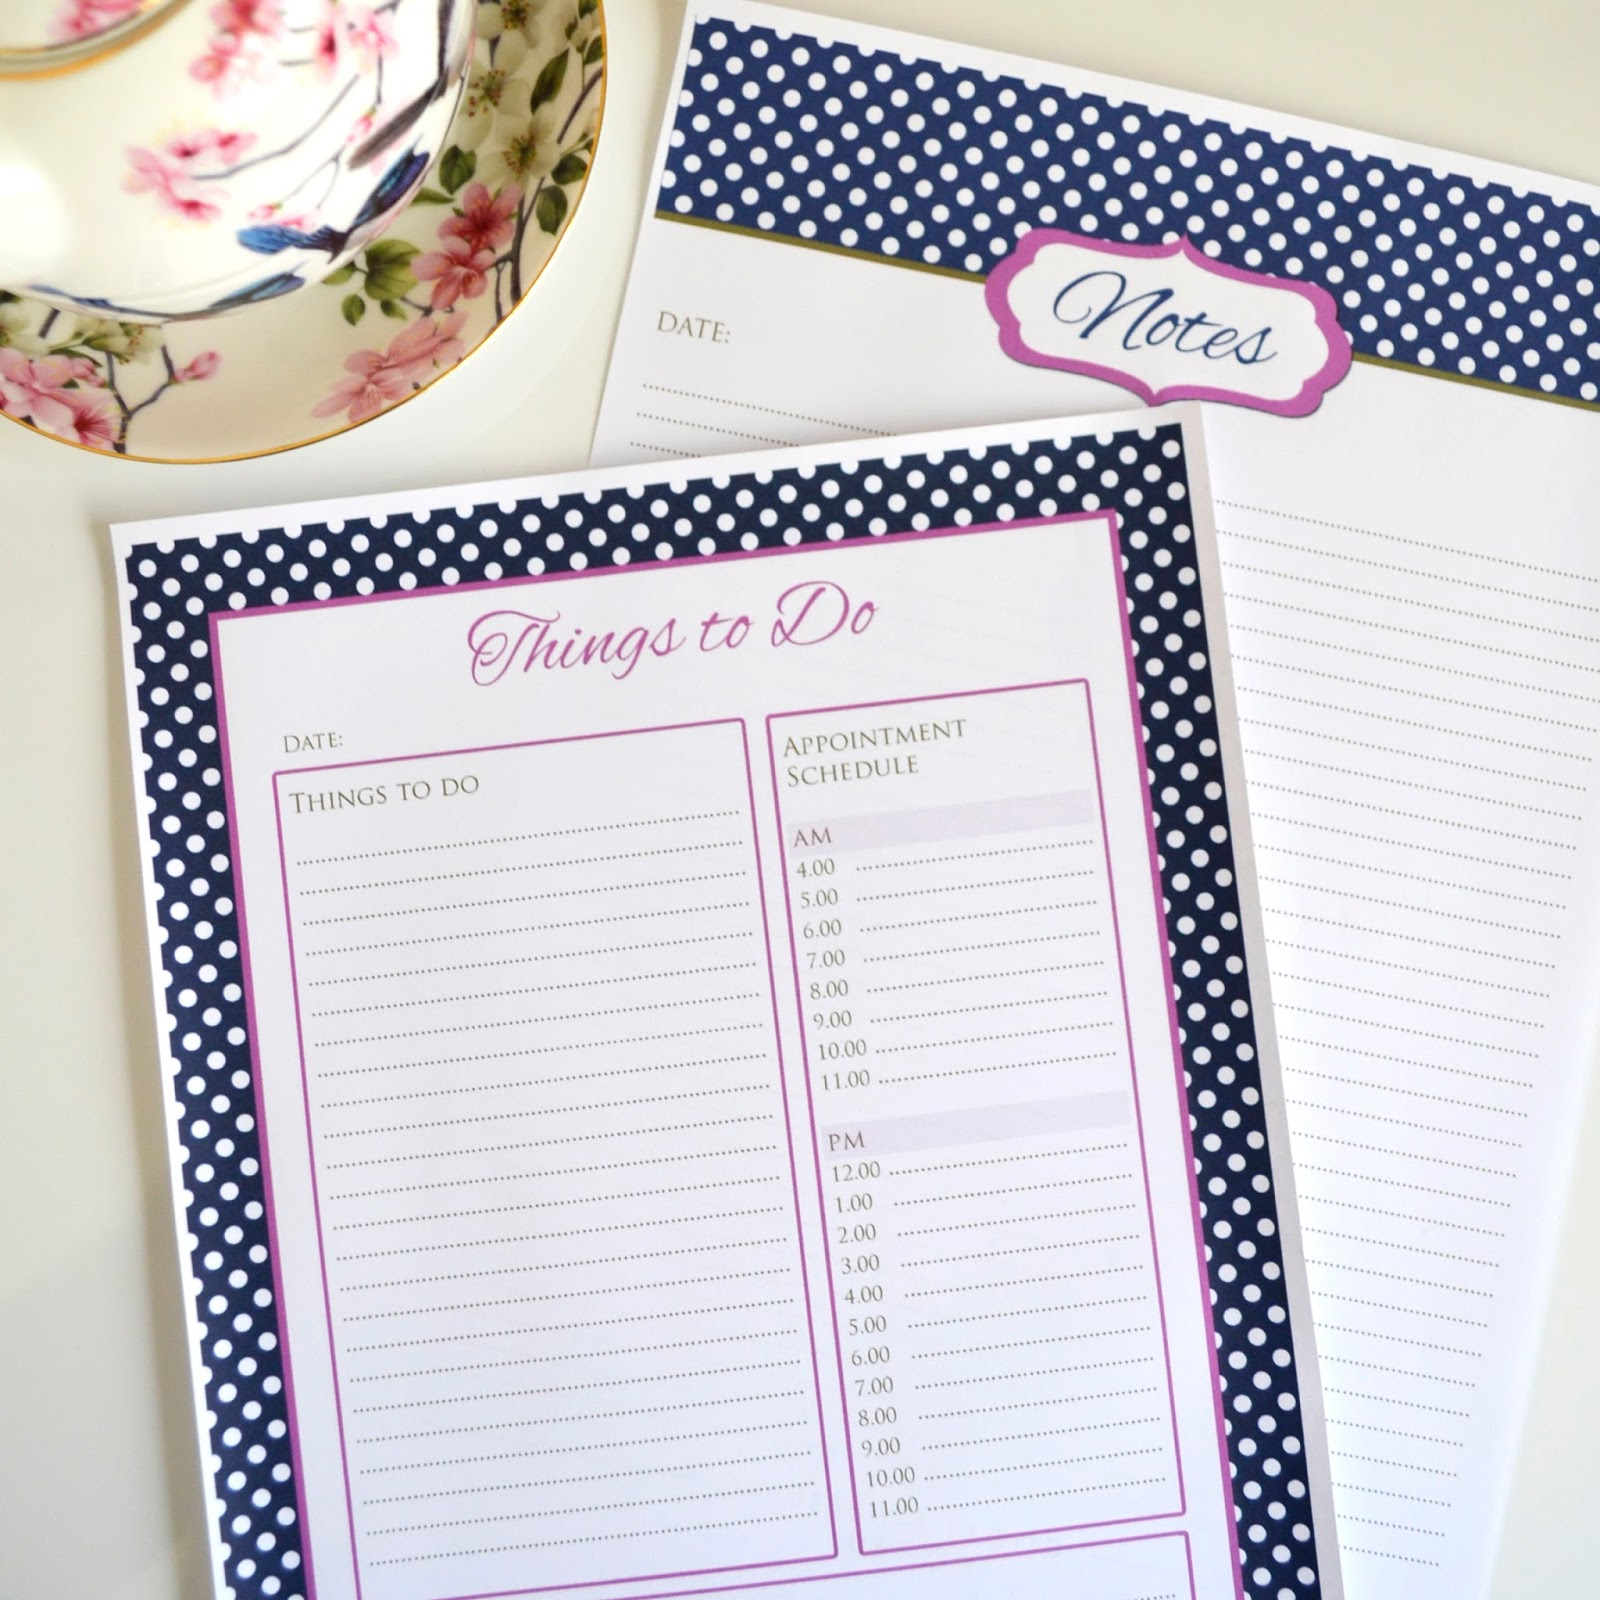 https://www.etsy.com/listing/193157680/preppy-daily-planner-and-notes-daily?ref=shop_home_active_1